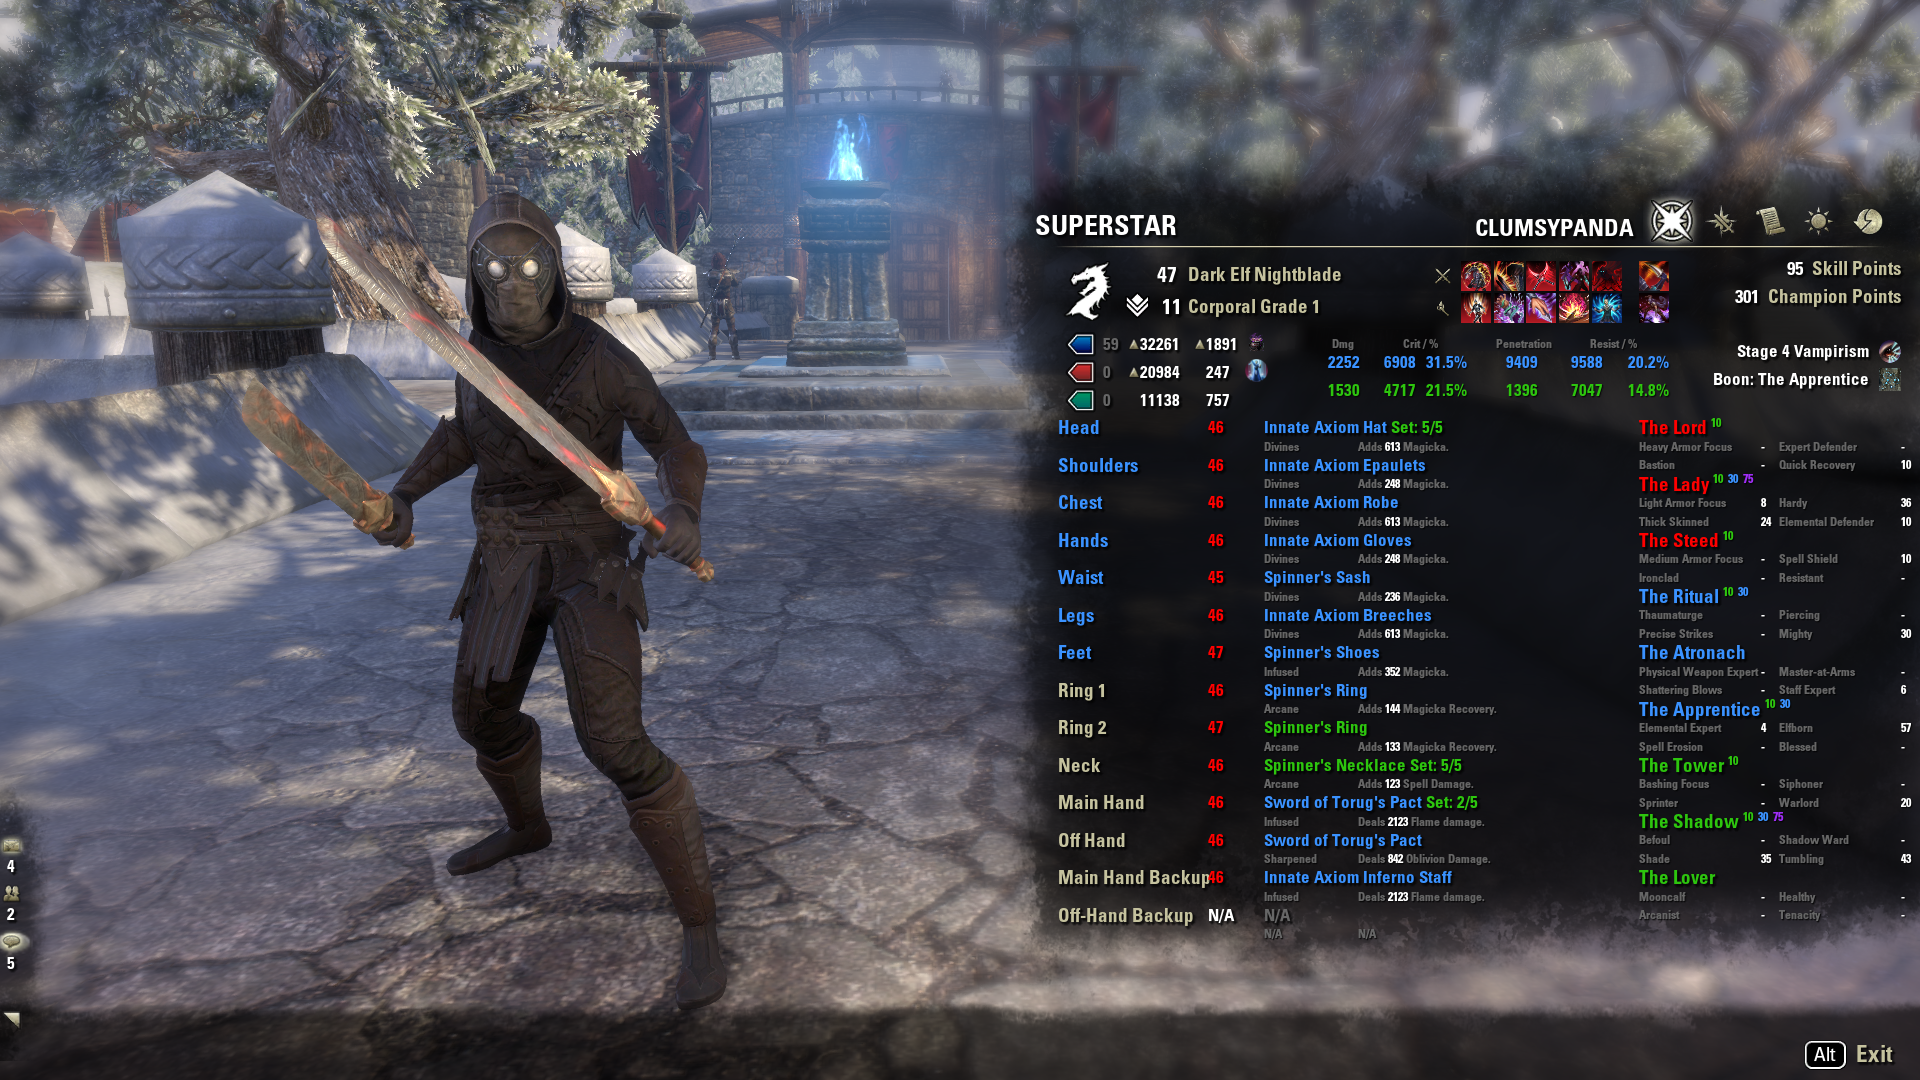 Fire Assassin (PVP build under level 50)